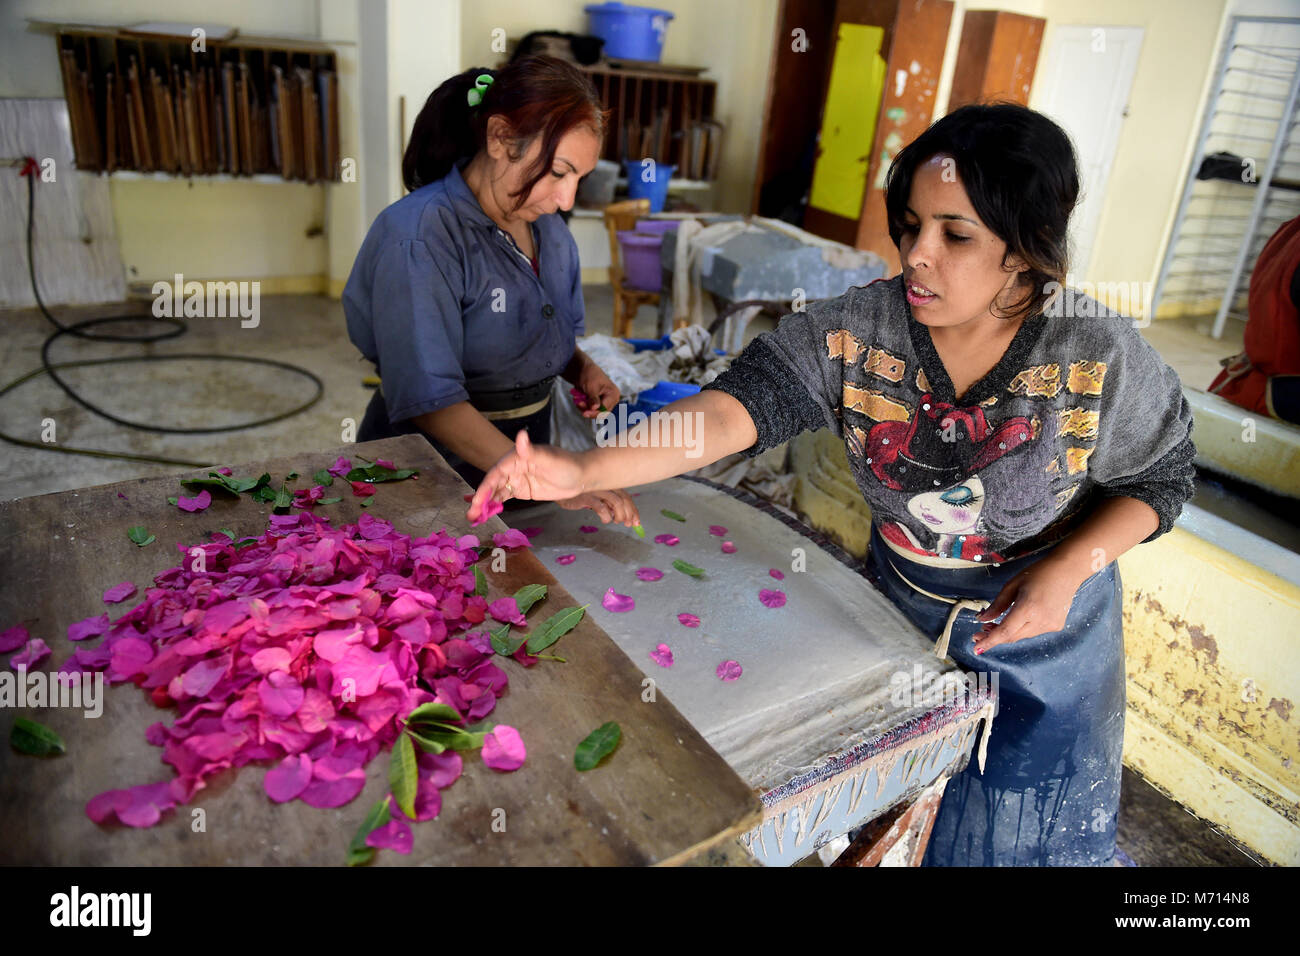 (180307) -- CAIRO, March 7, 2018 (Xinhua) -- Egyptian women make handicrafts with flowers and recycled materials - Stock Image